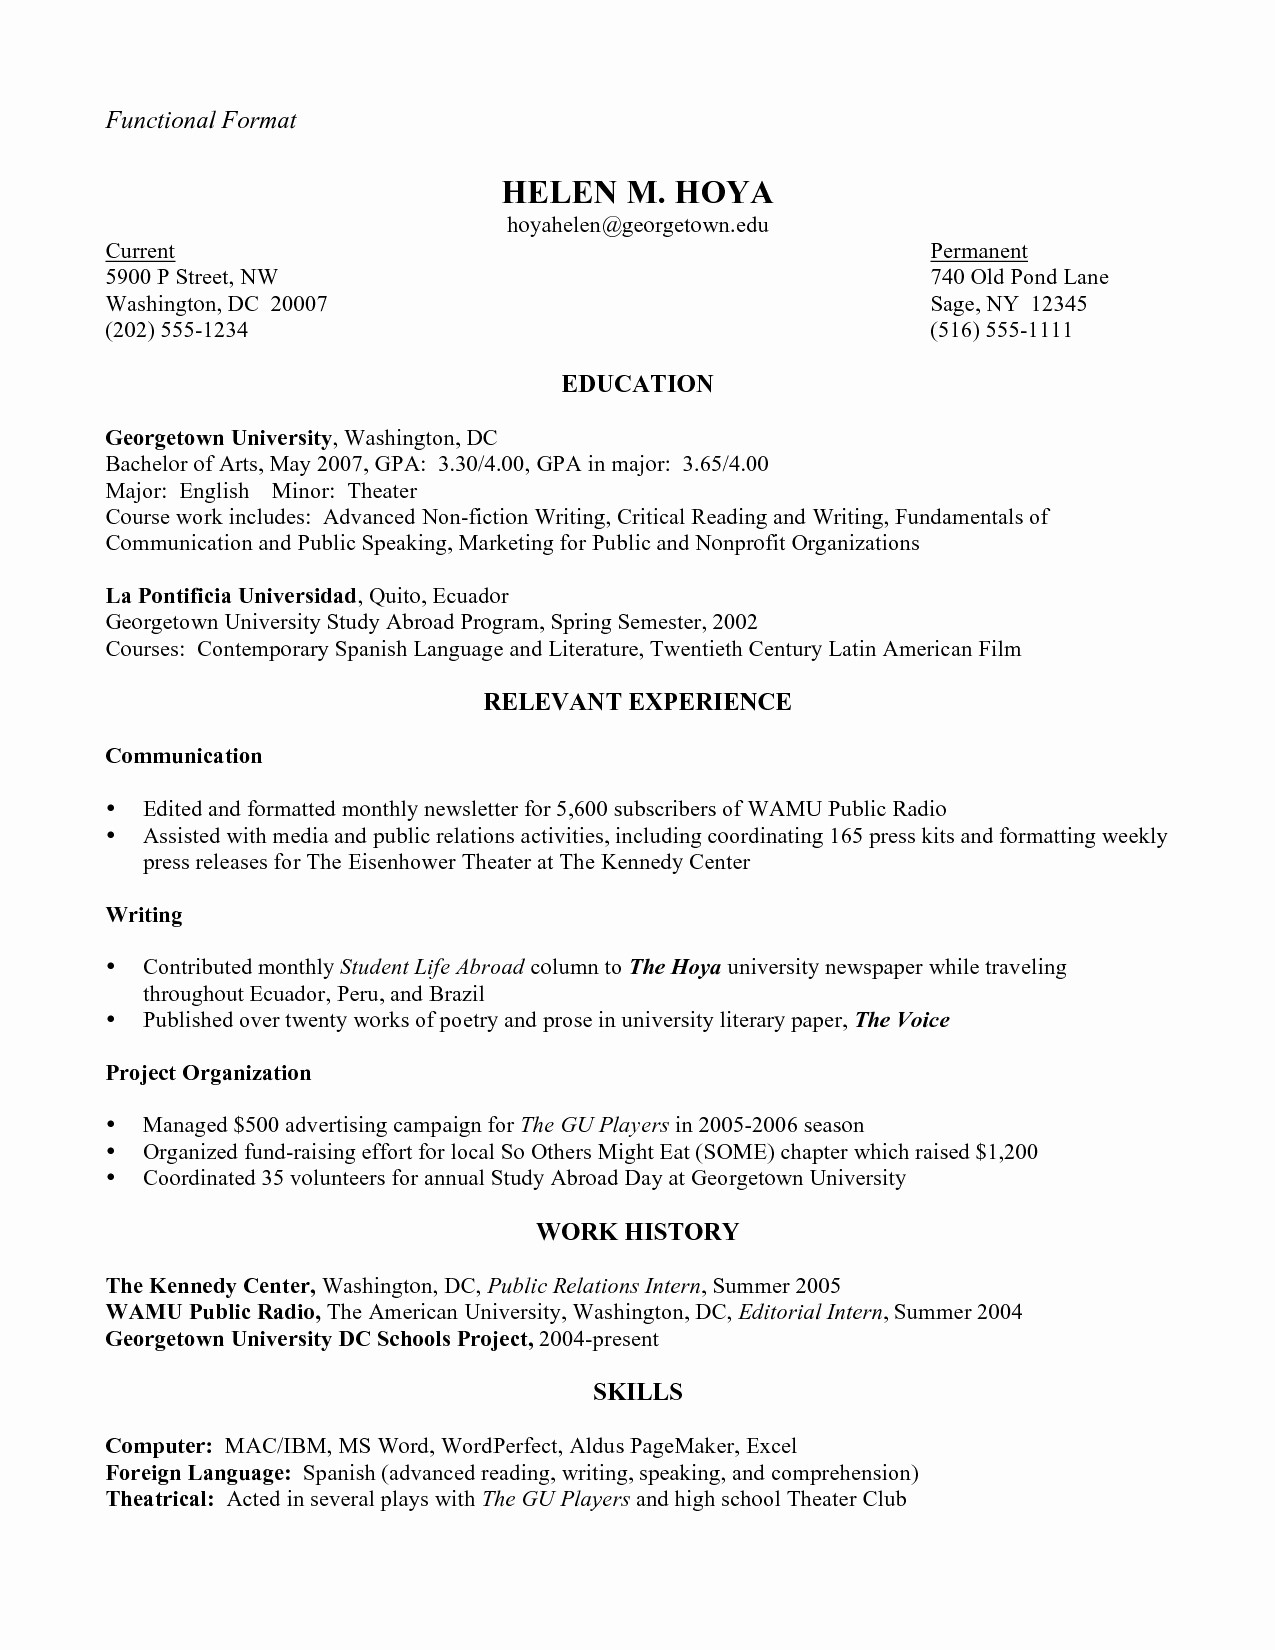 Public Speaker Resume Sample - 20 Public Speaking Resume